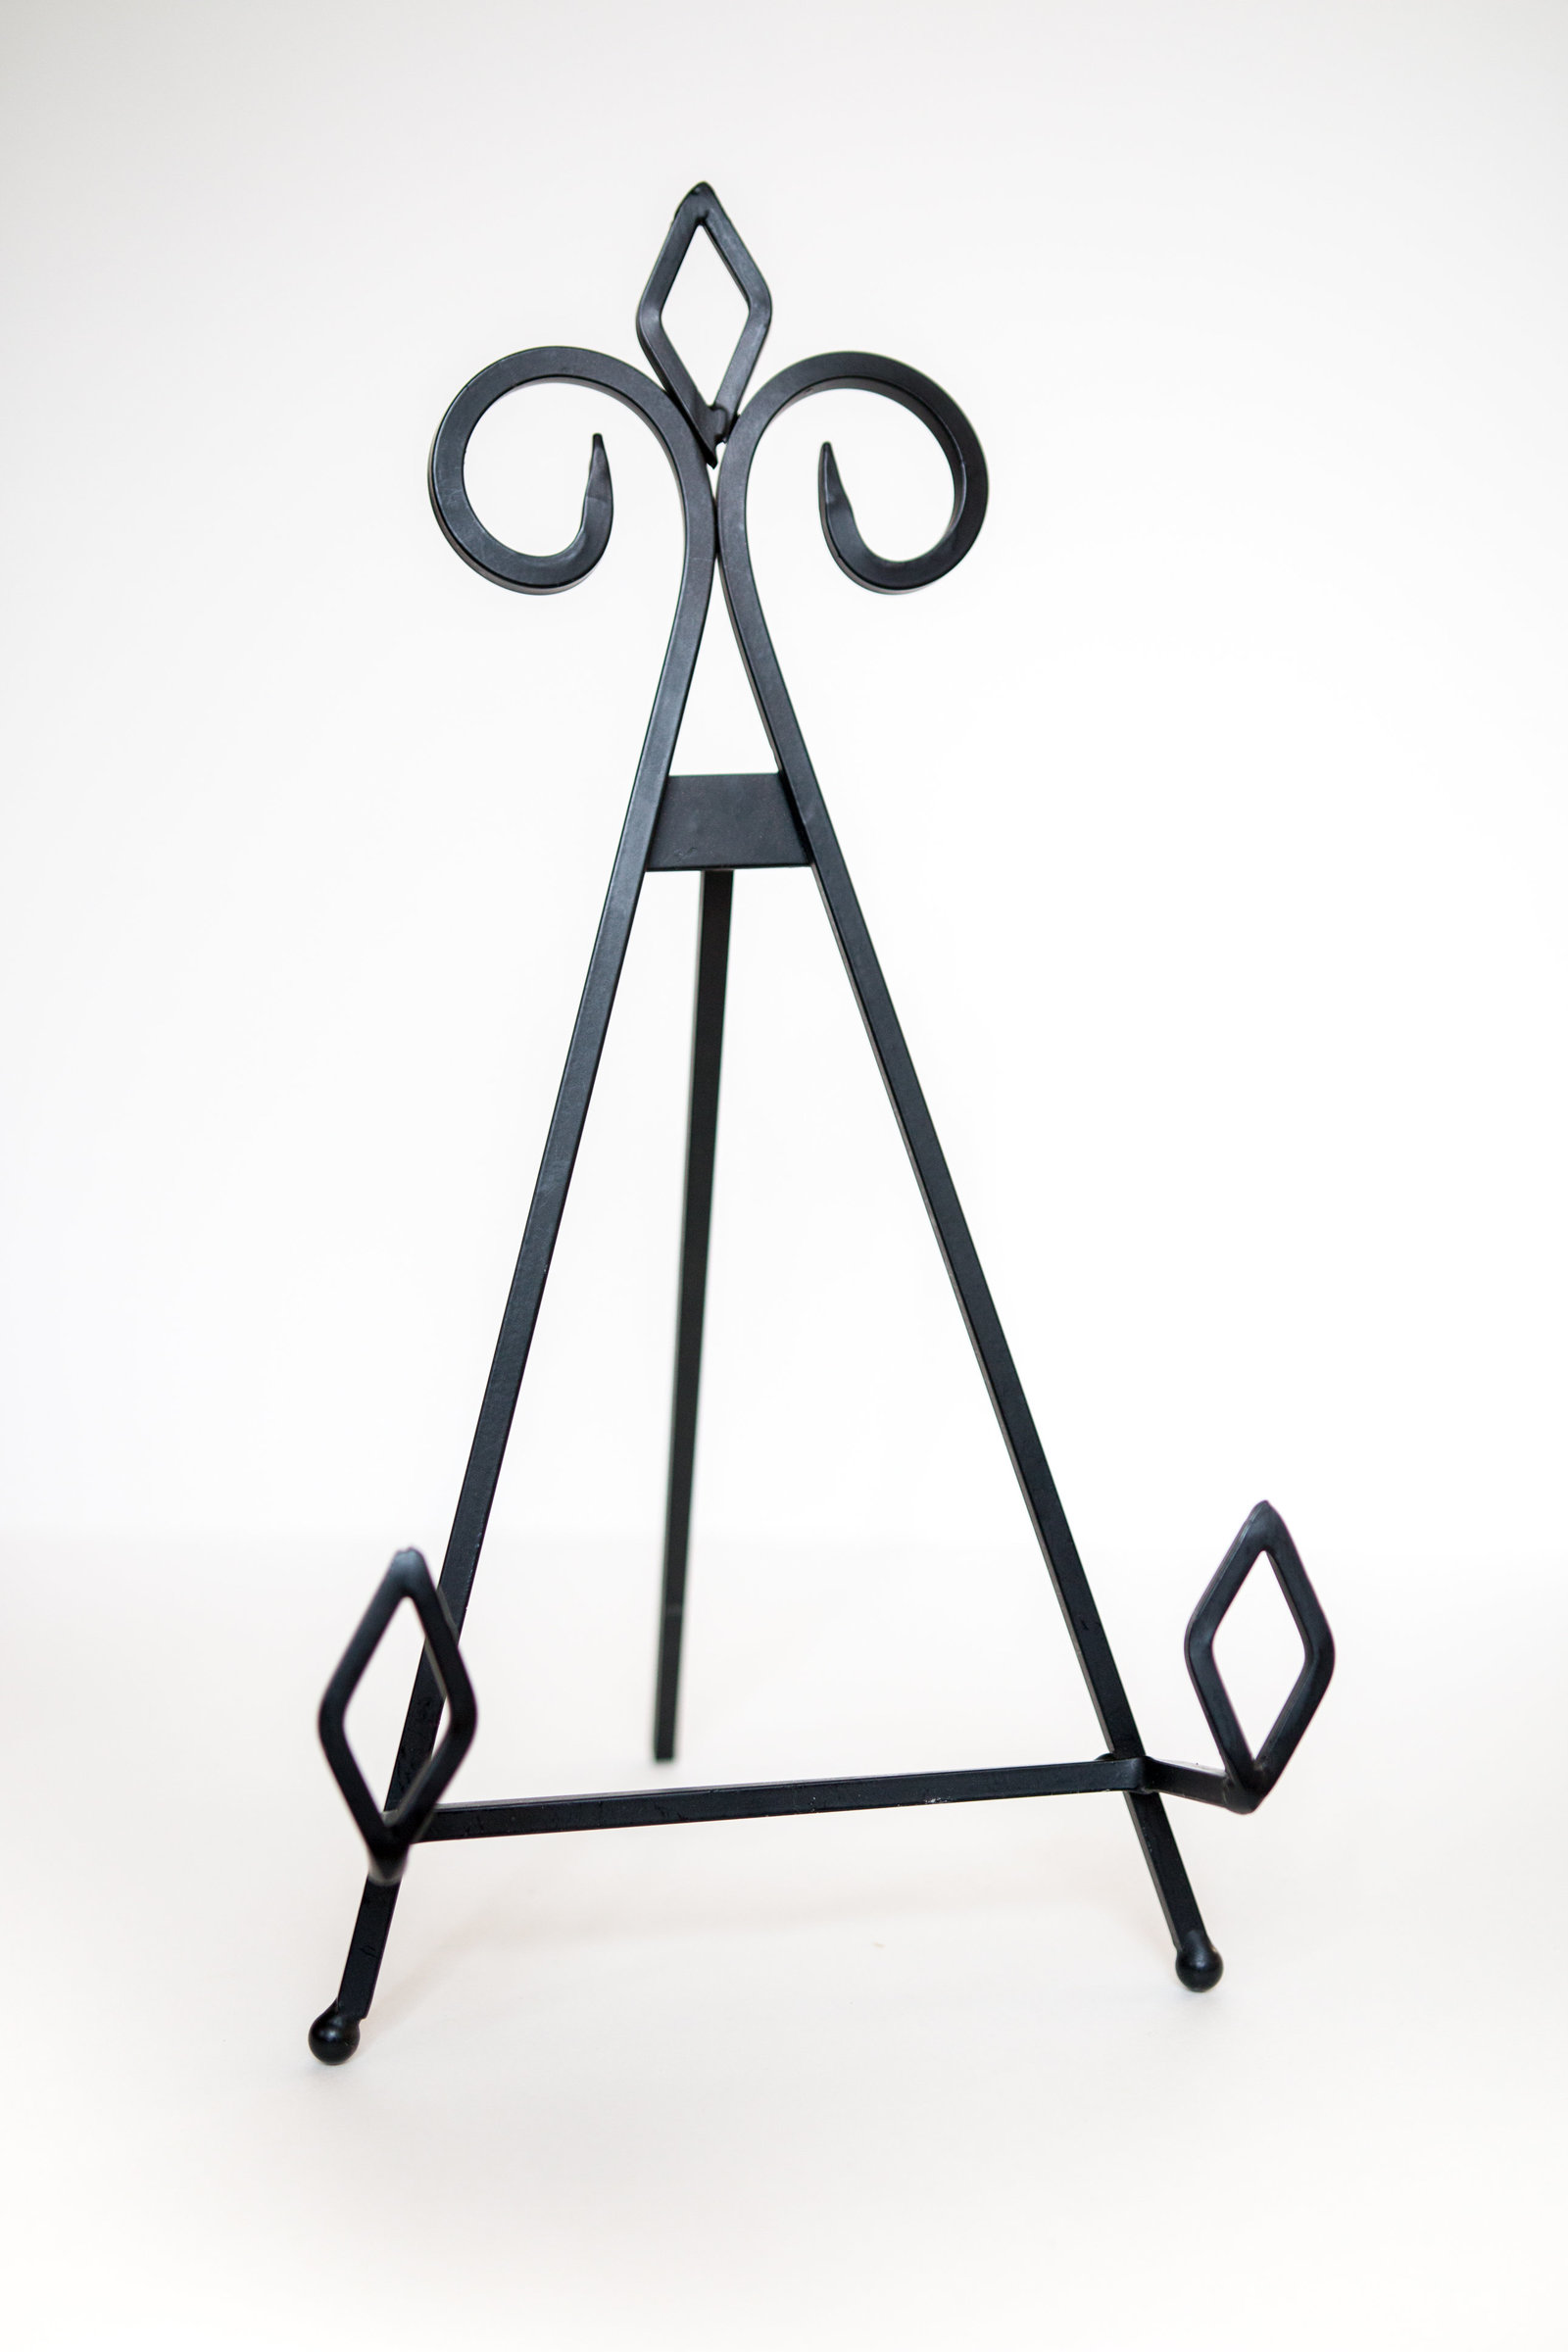 Matte black metal table easel for events or weddings through Hue + FA Rental